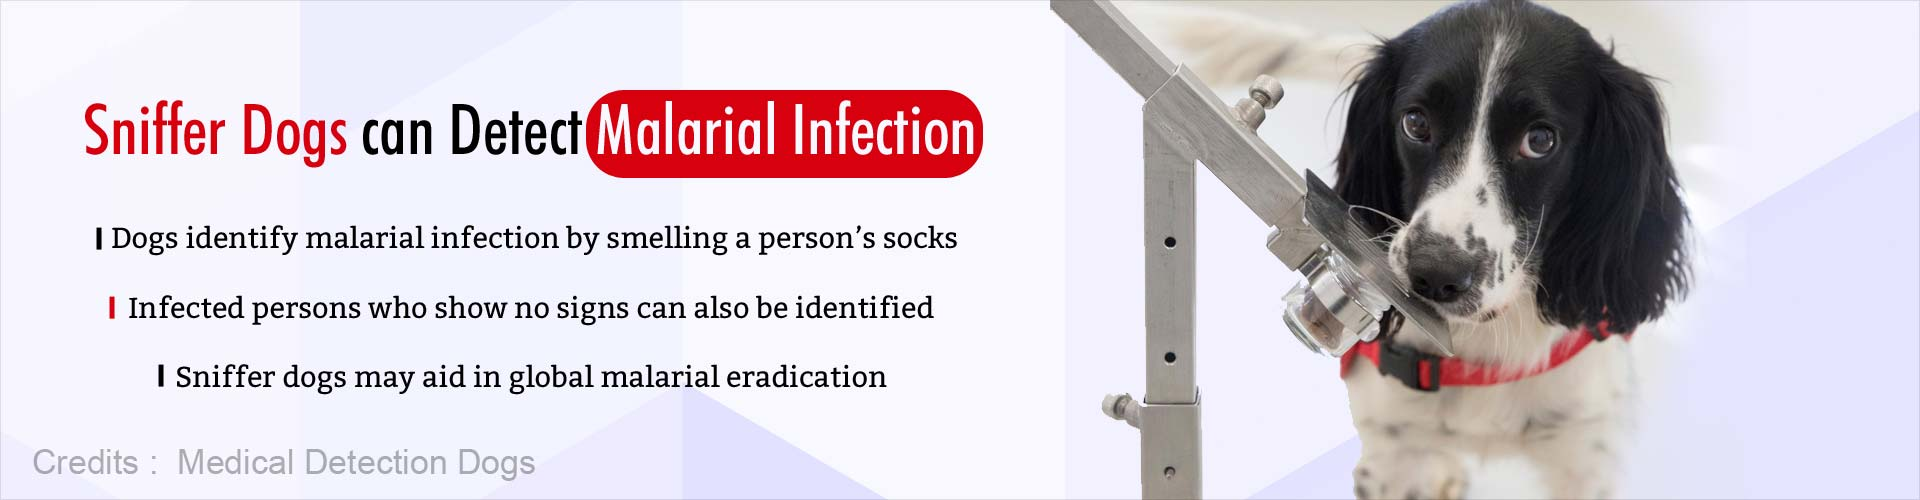 Sniffer dogs can detect malarial infection. Dogs identify malarial infection by smelling a person''s socks. Infected persons who show no signs can also be identified. Sniffer dogs may aid in global malarial eradication.